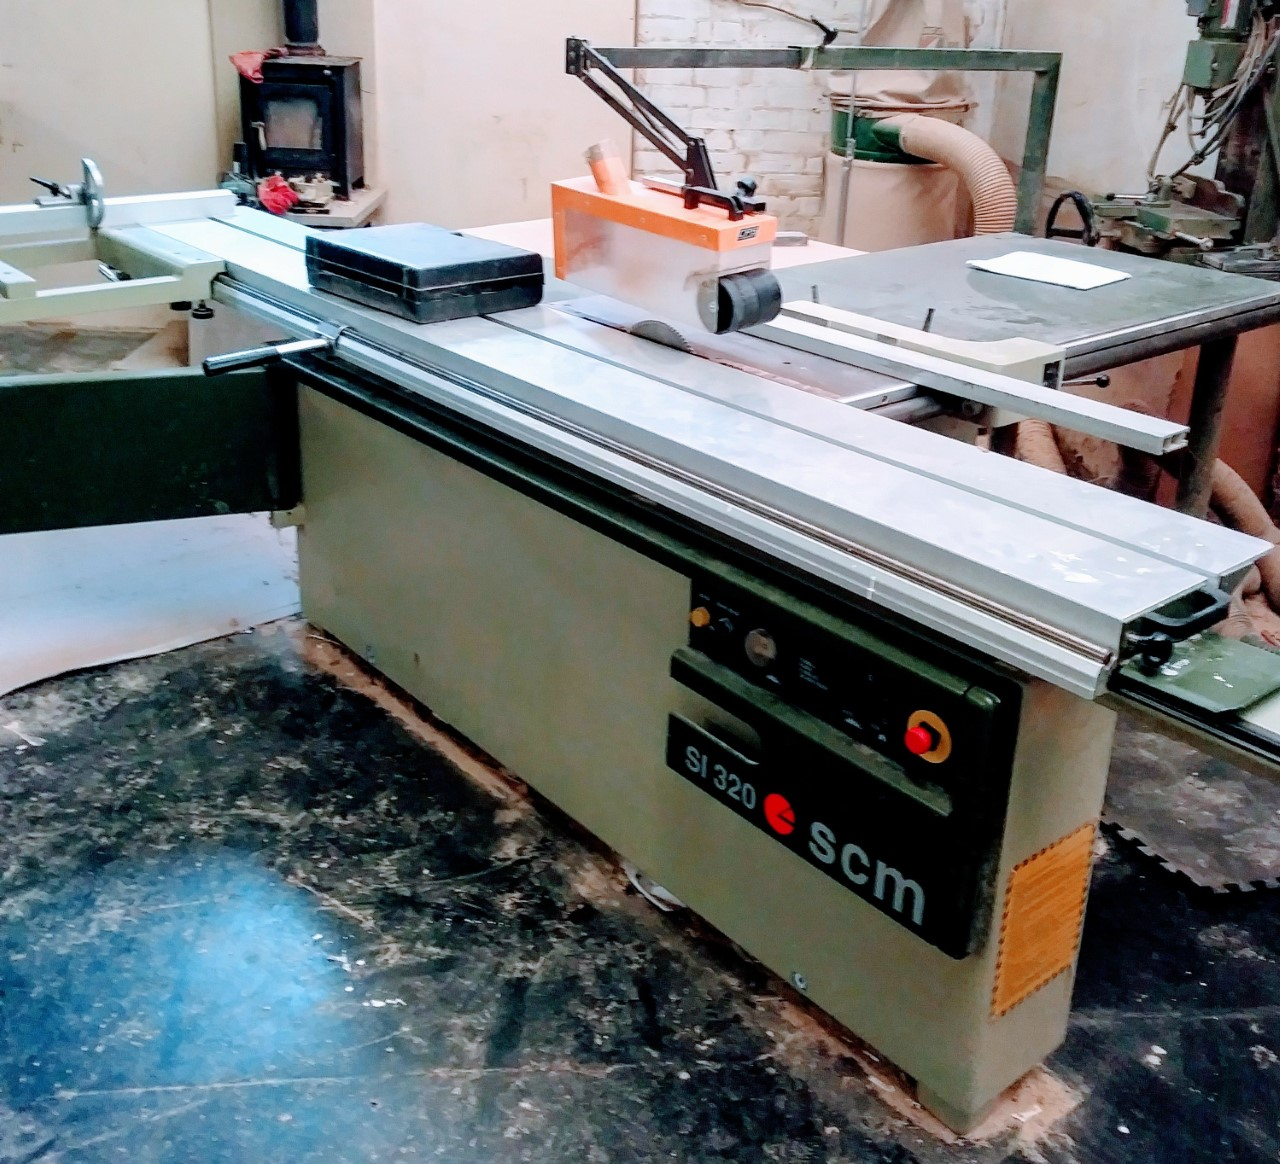 SCM SI 320 panel saw - Click to Enlarge